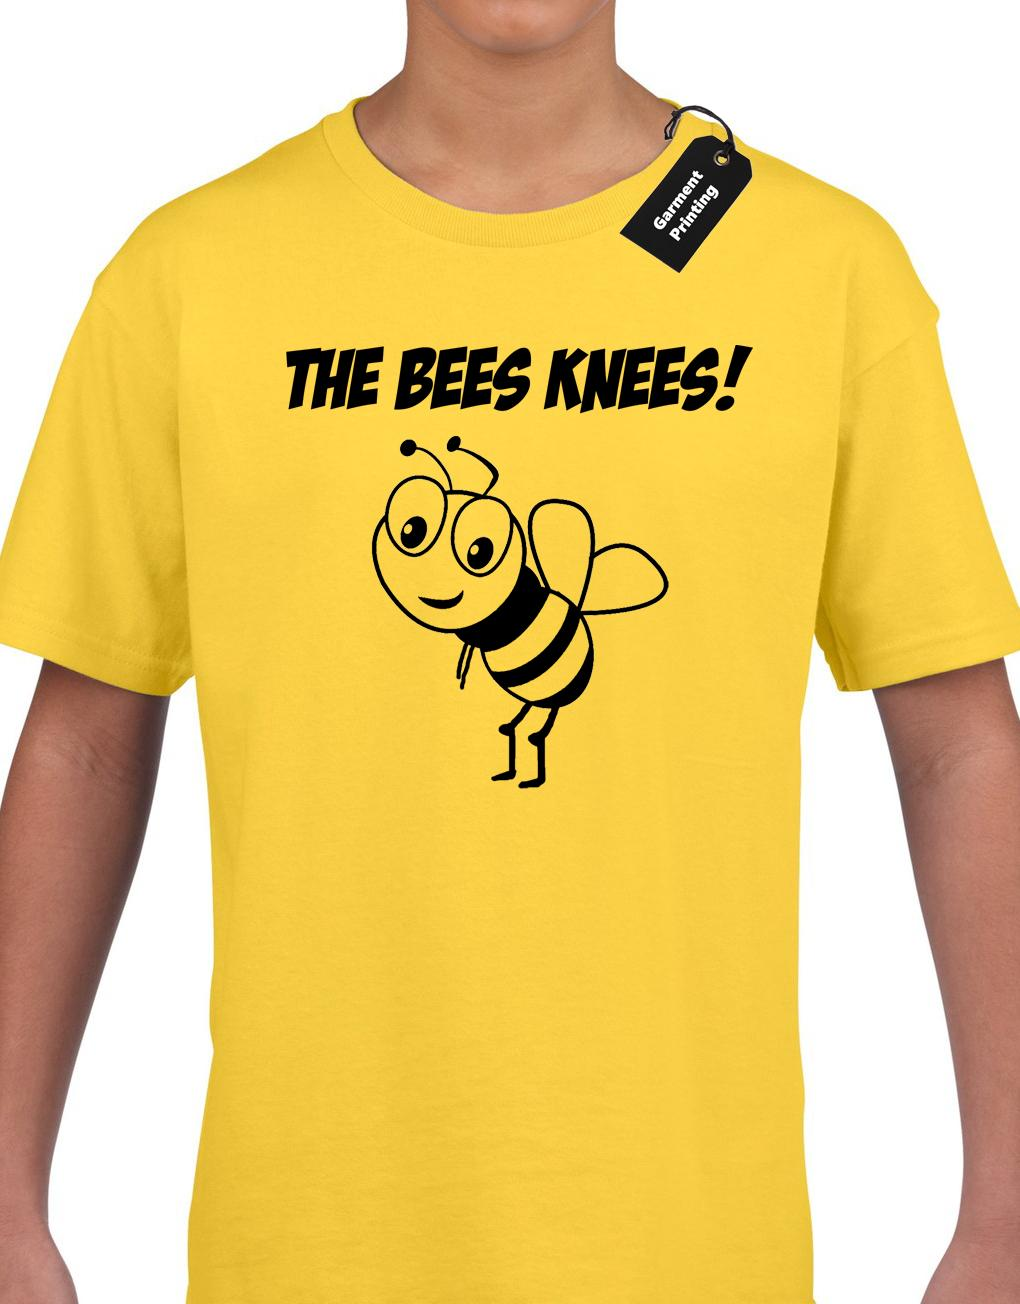 83d75a84b91 THE BEES KNEES KIDS CHILDRENS T SHIRT TOP FUNNY CUTE CARTOON DESIGN TOP BOYS  Funny Unisex Custom Shirt Black Shirts From Young ten